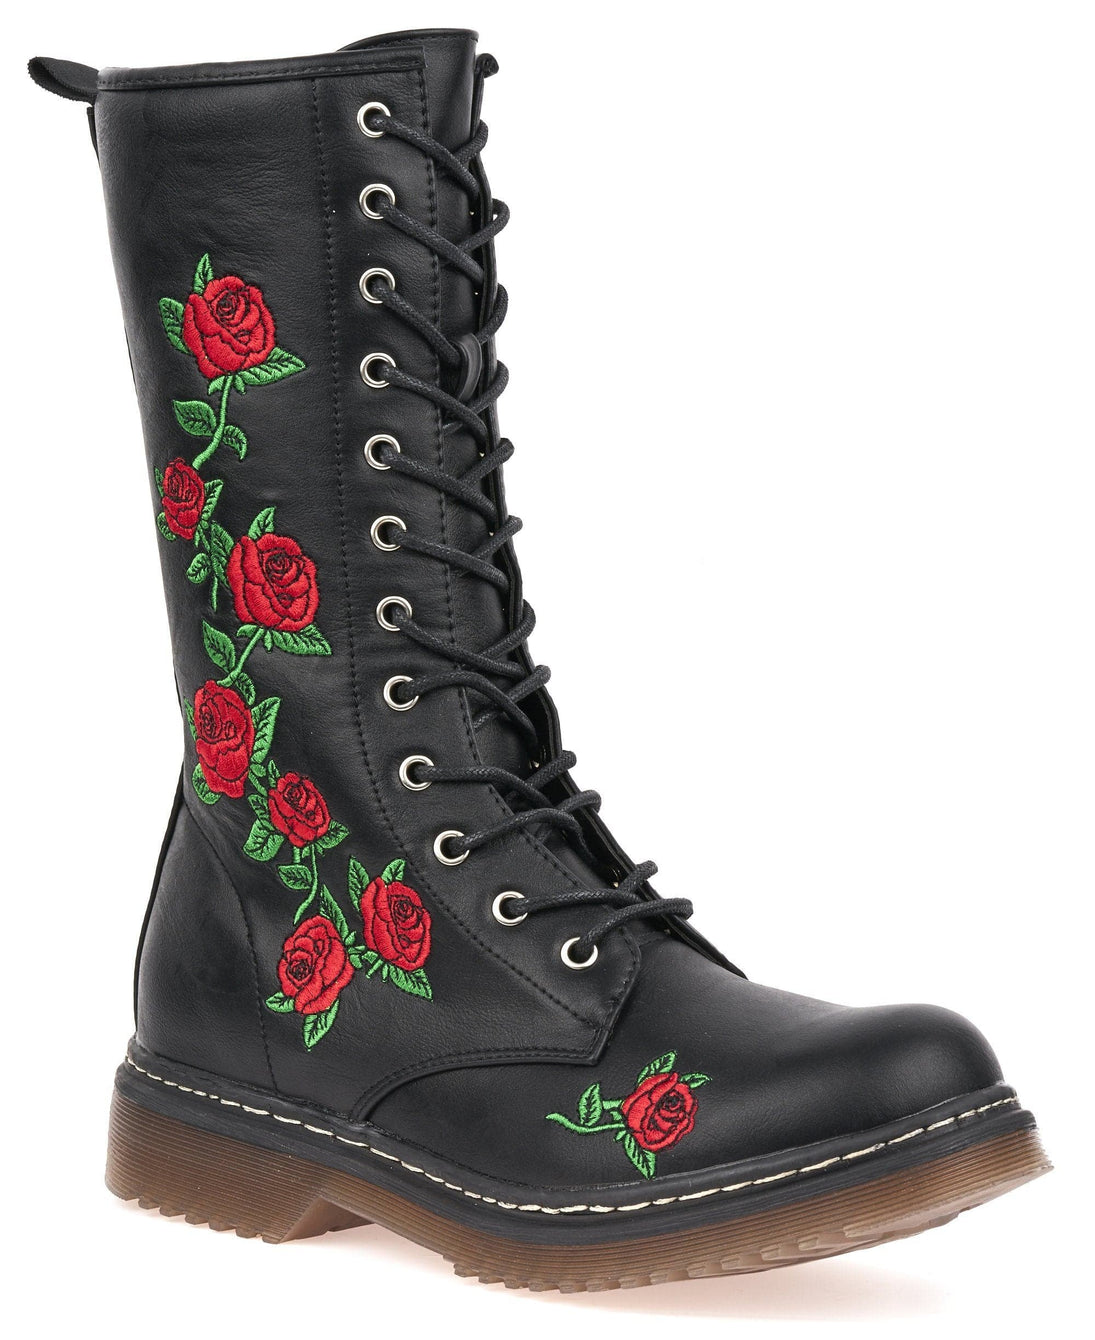 Polly Rose Print Lace Up Boot in Black Matt